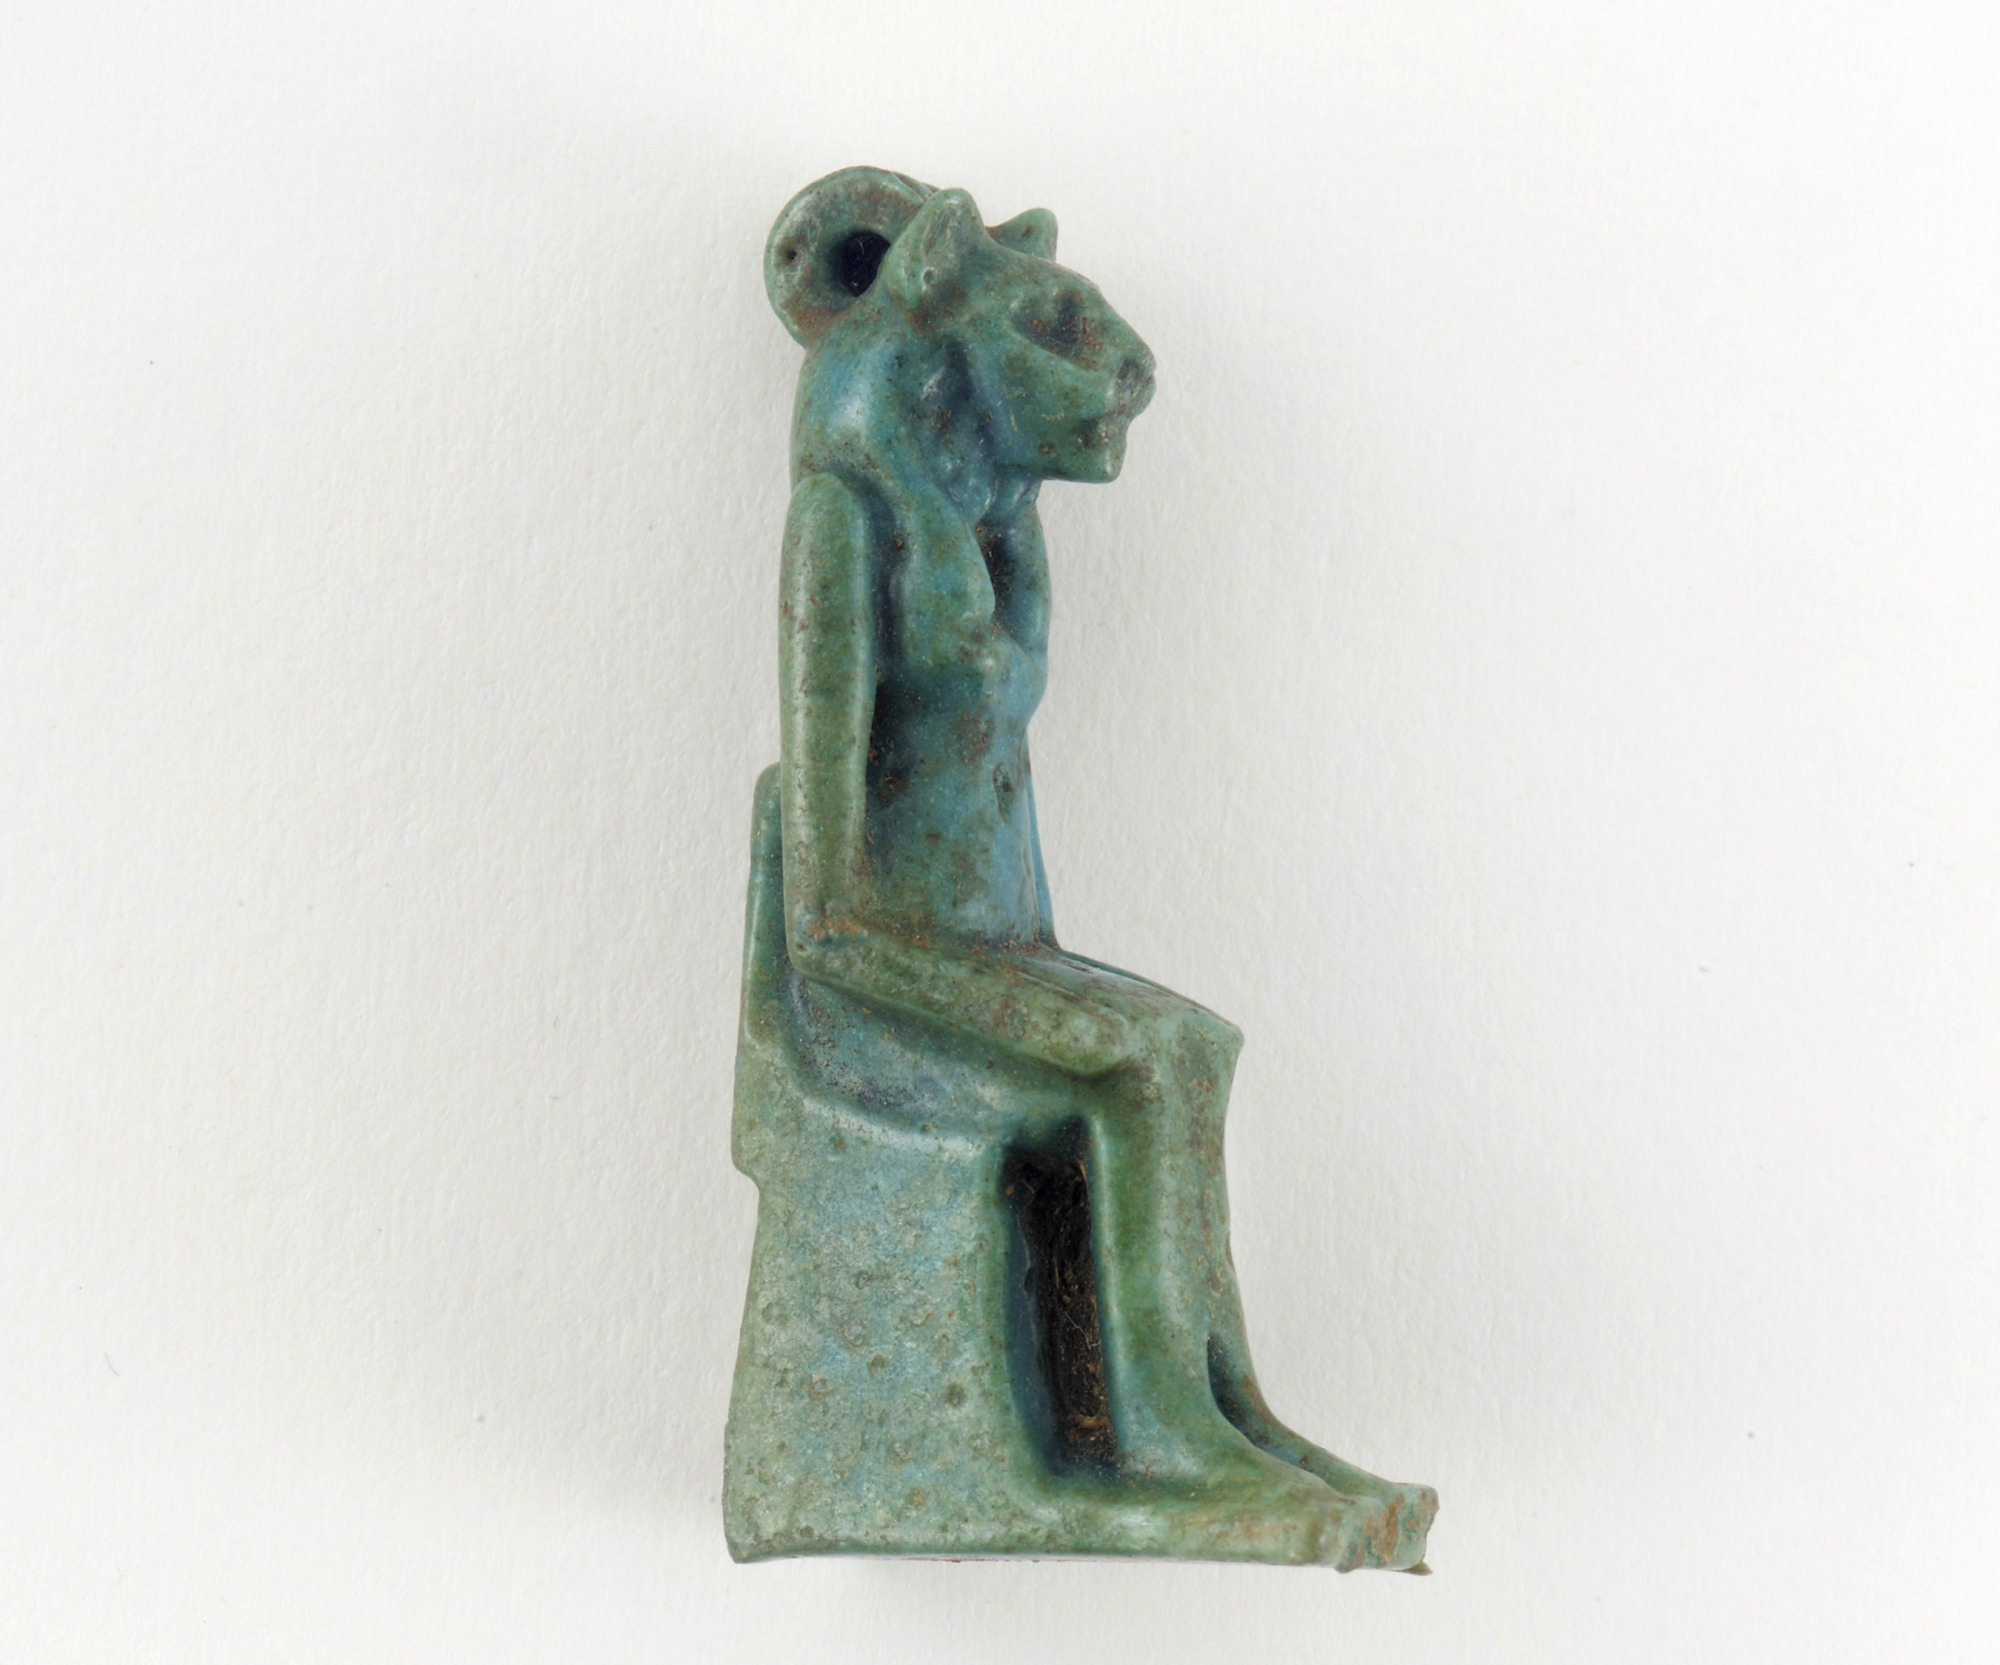 proper right: Amulet of Sakhmet or Bastet